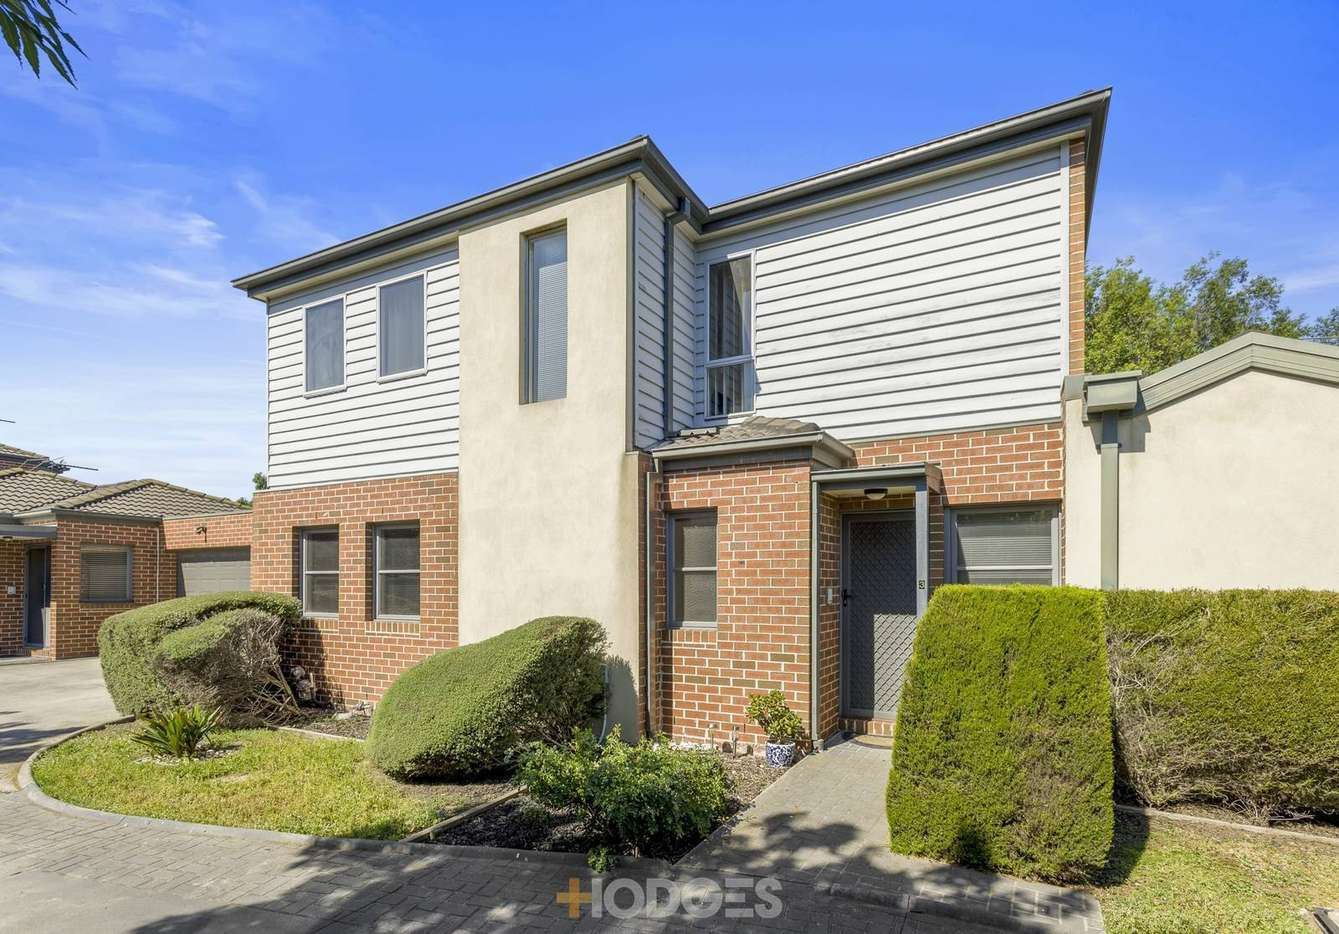 Main view of Homely townhouse listing, 3/16 Pascoe Street, Pascoe Vale, VIC 3044